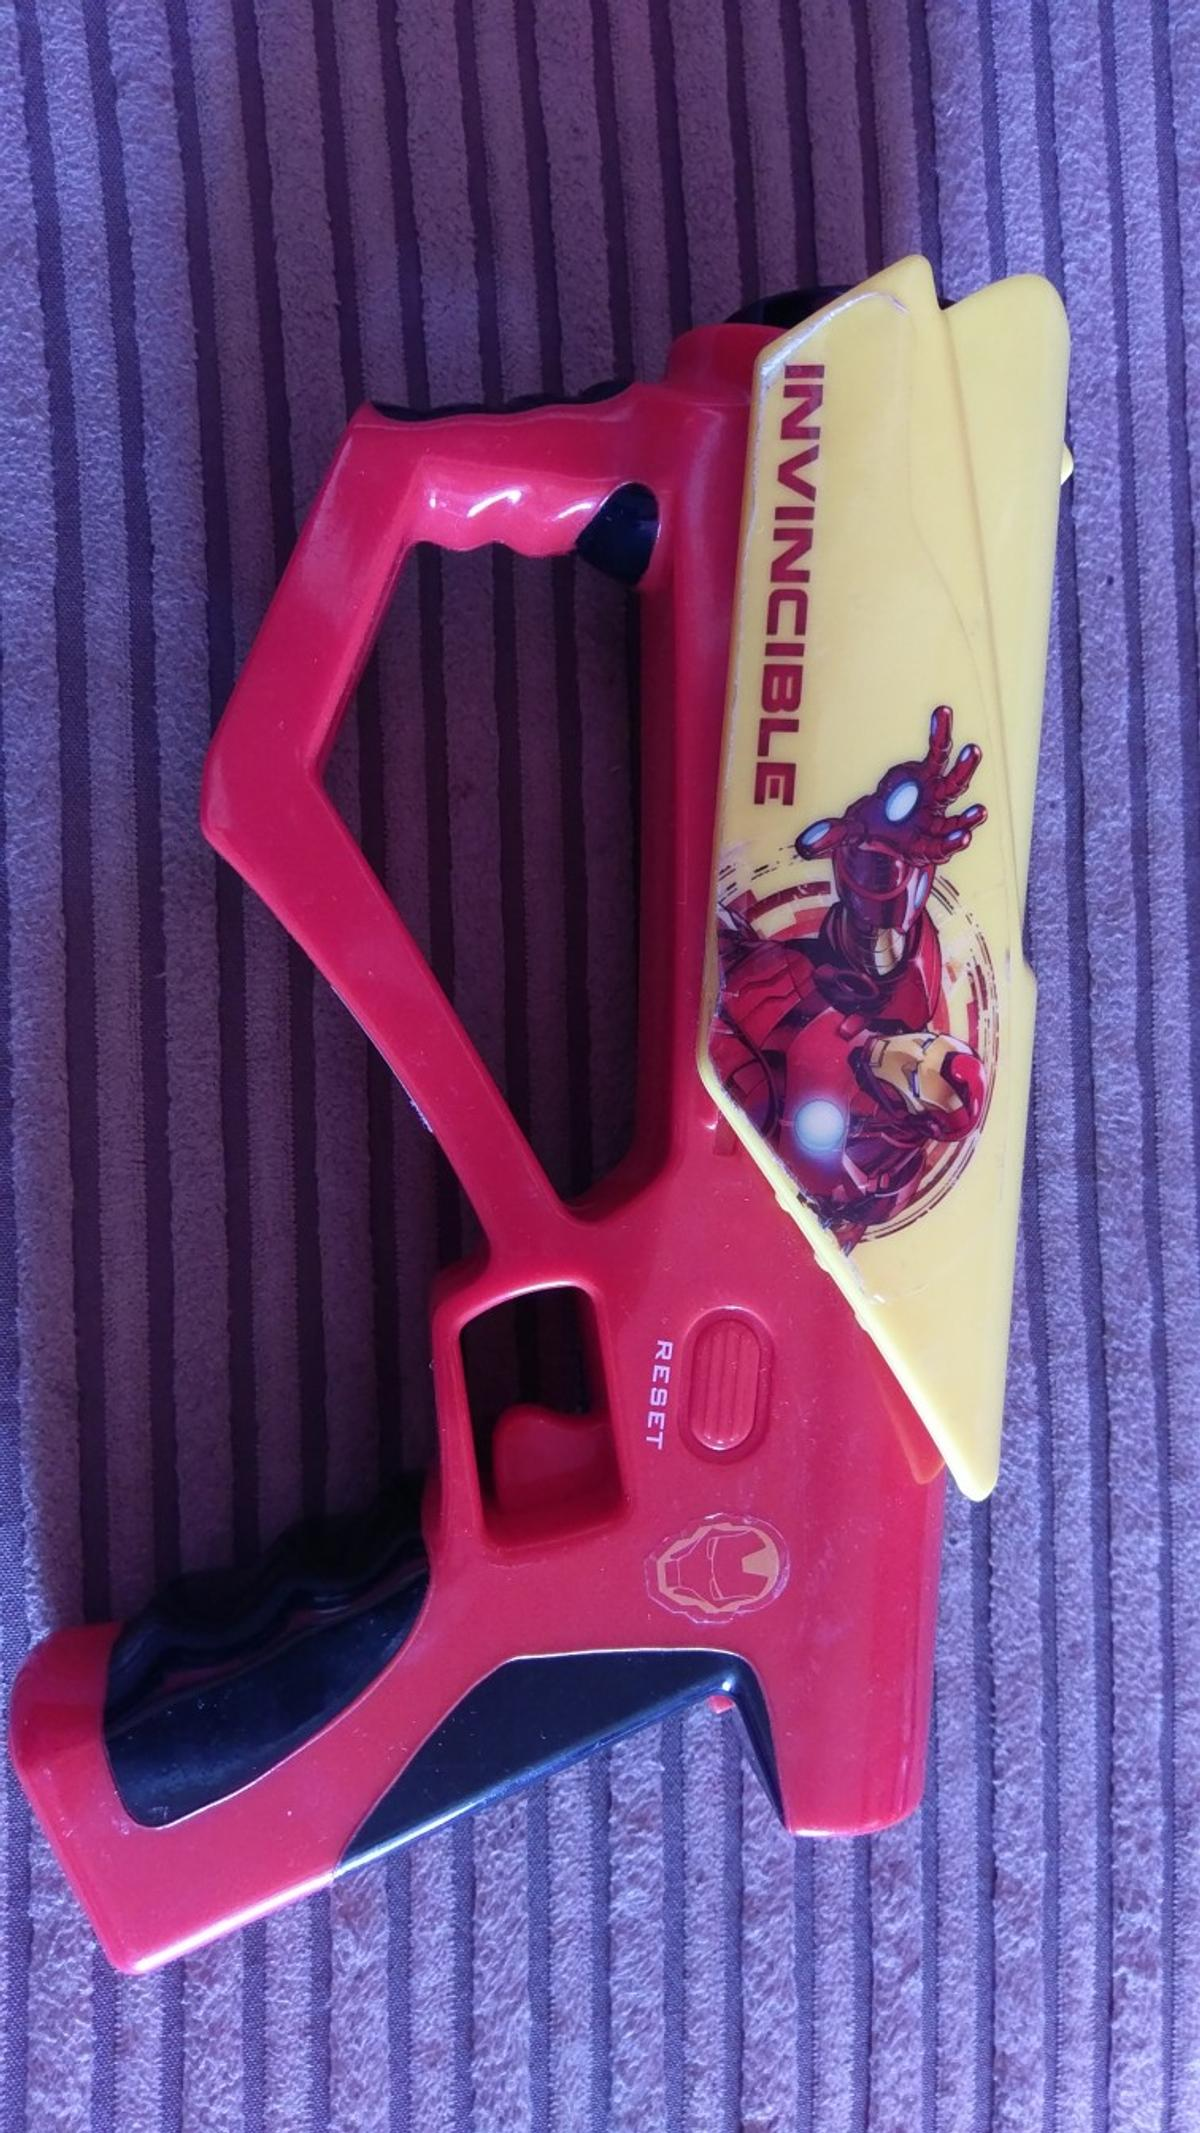 Kids Marvel invincible iron man ,lighting, sounds toy gun. It's is in excellent working condition.